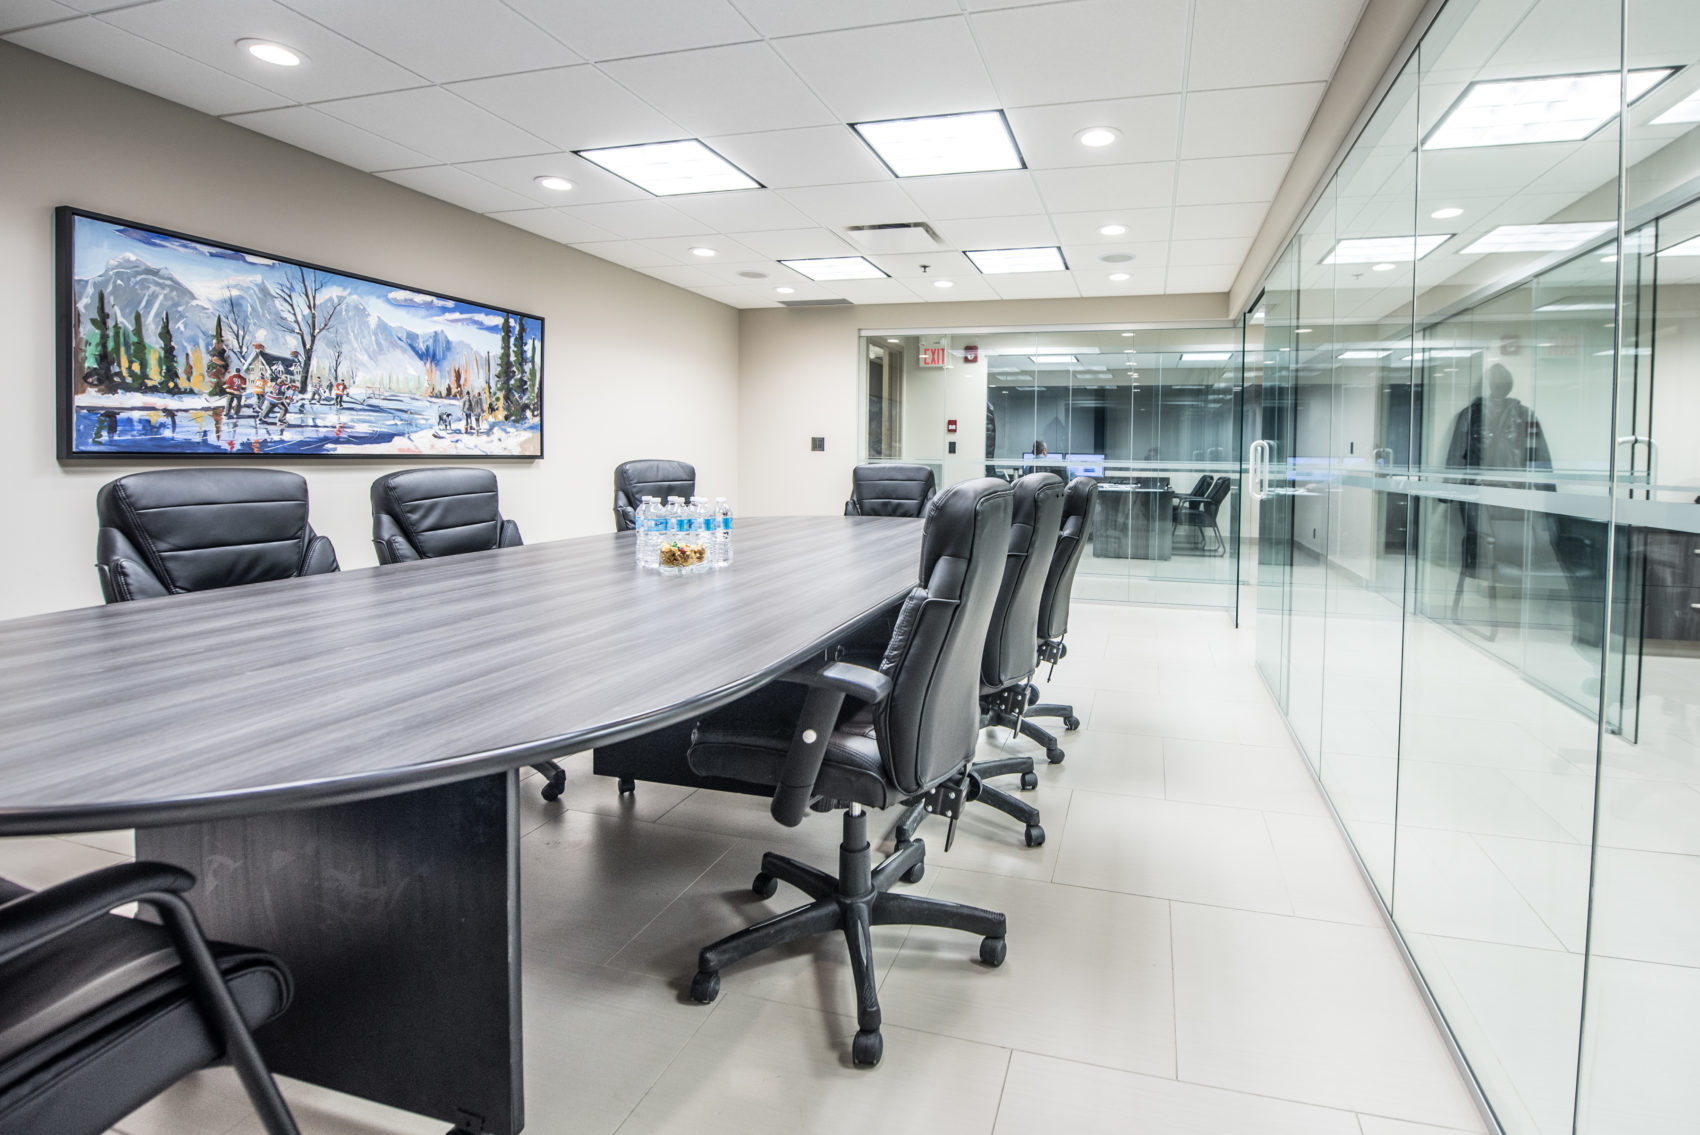 Boardroom office with flatscreen and glass walls.